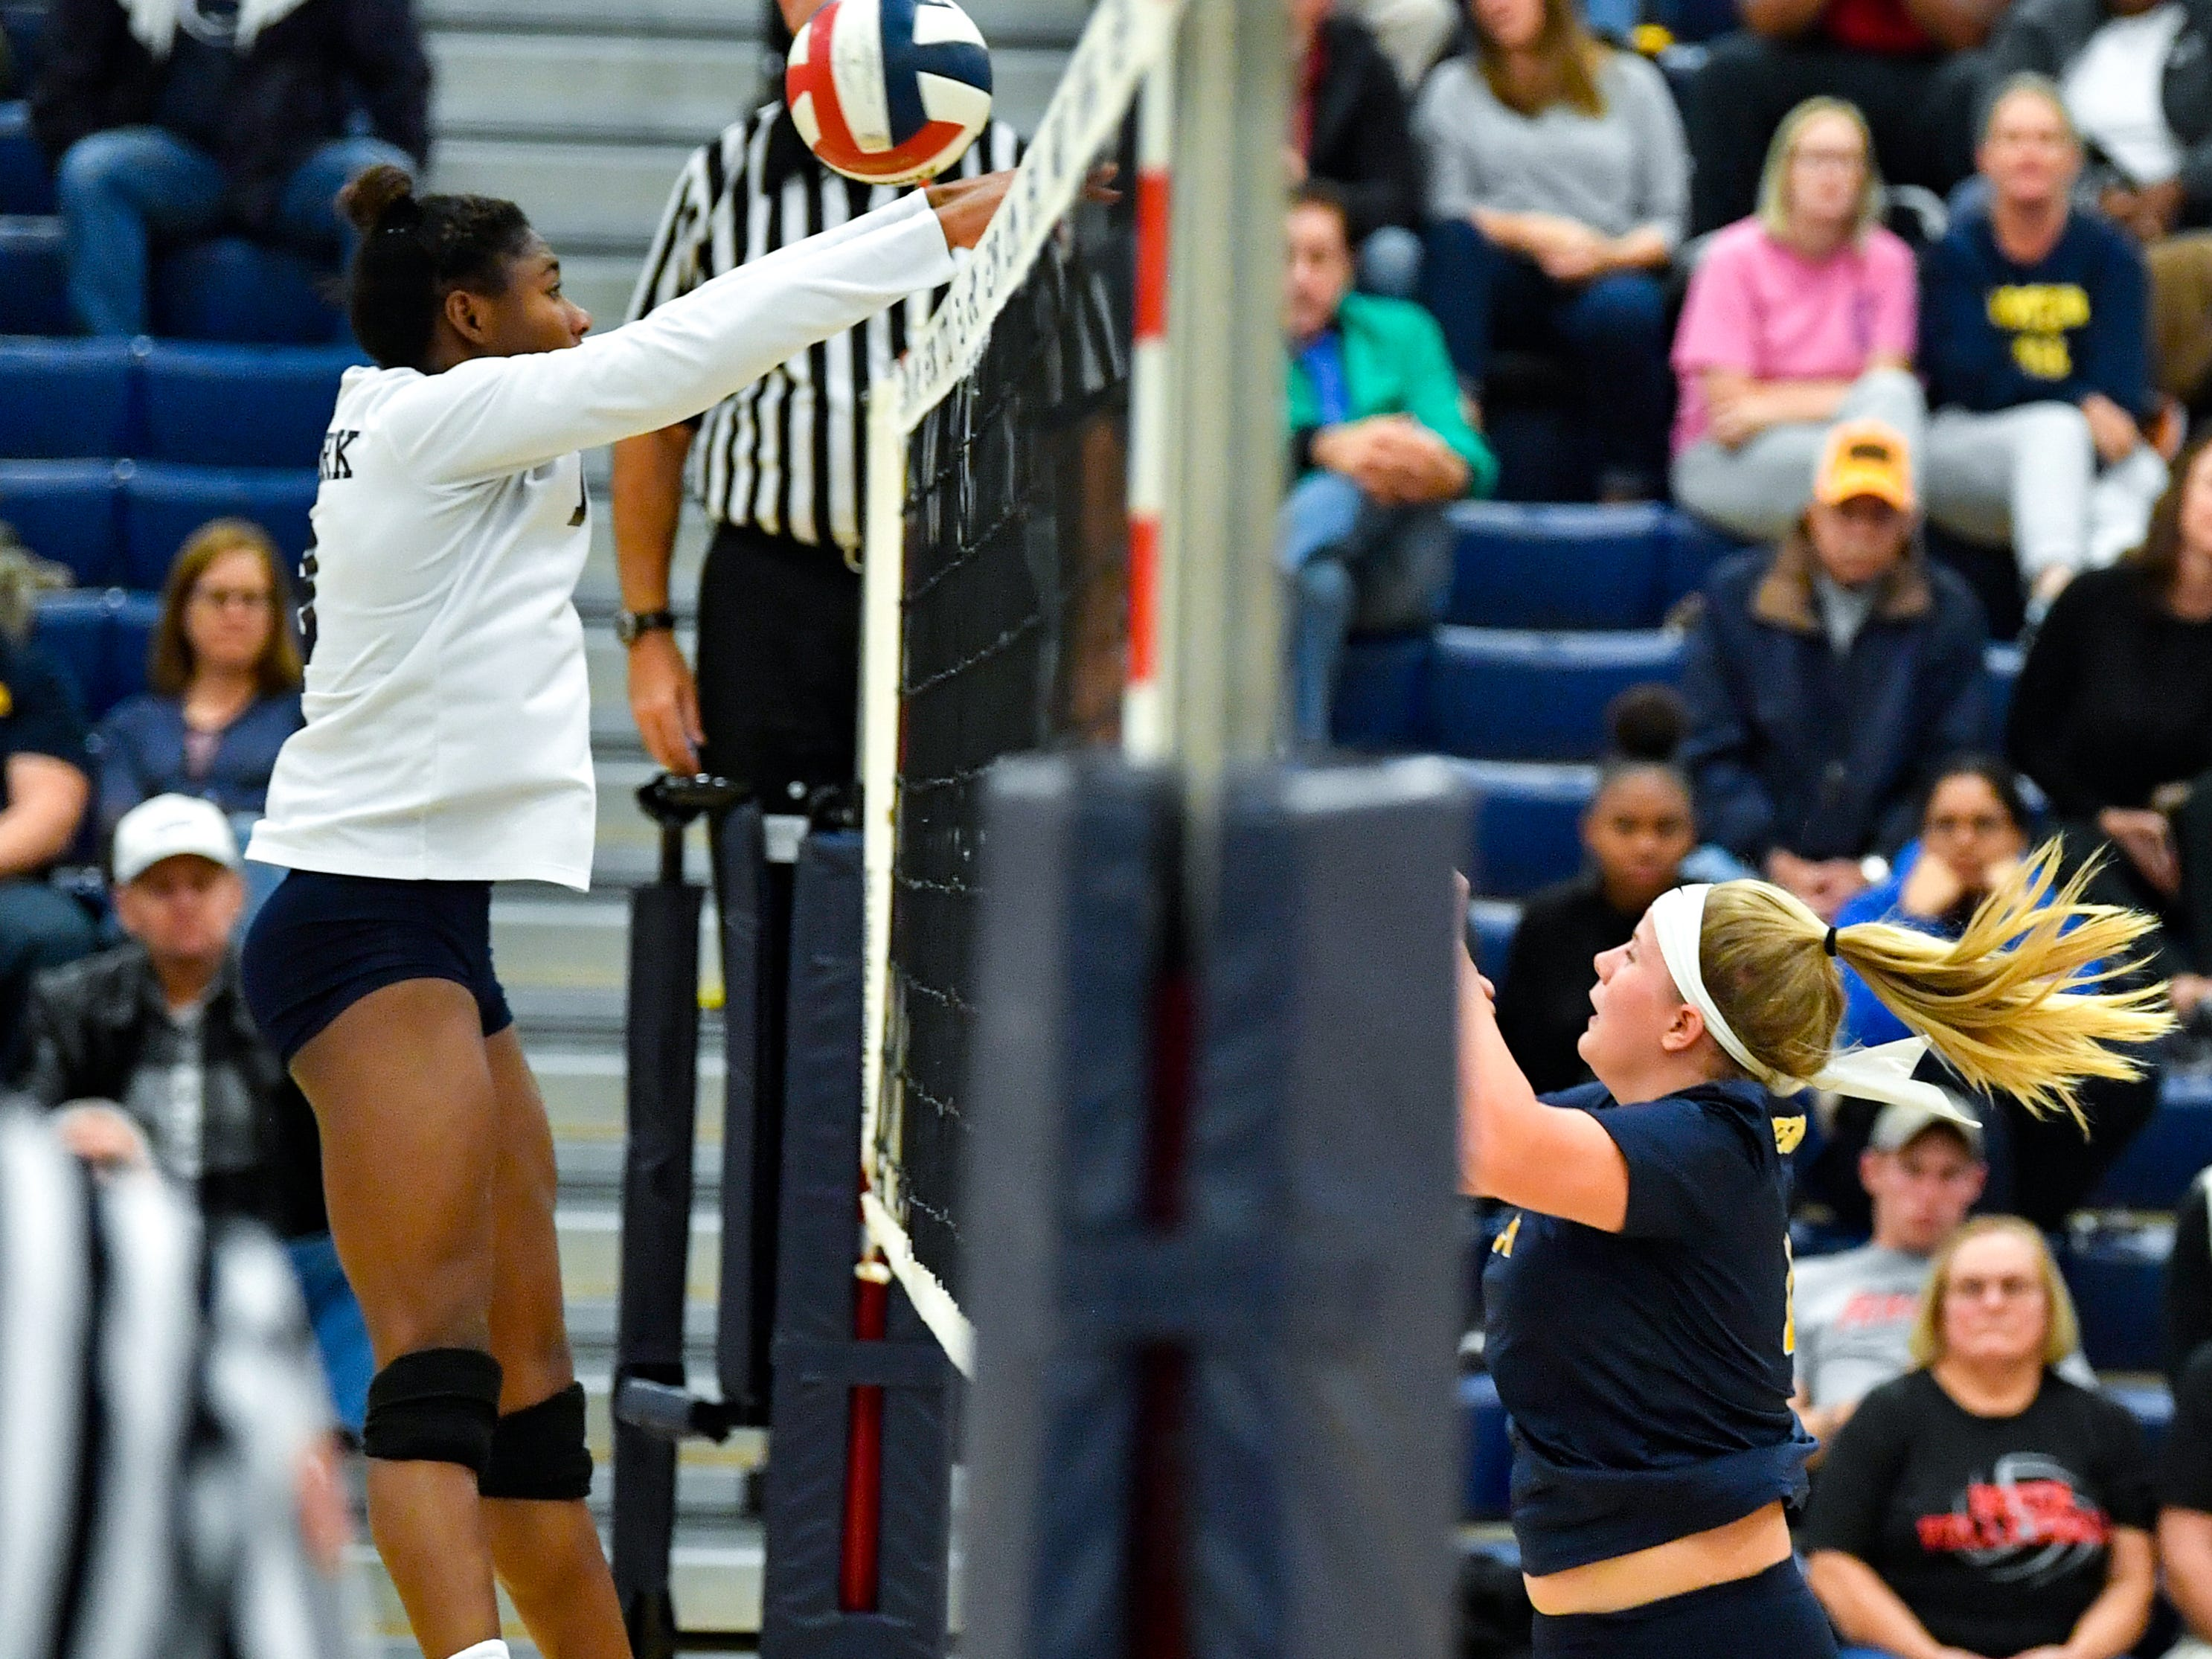 Tesia Thomas (19) tries to block the spike during the District 3 Class 3A girls' volleyball quarterfinals between West York and Eastern York at West York High School, October 30, 2018. The Bulldogs defeated the Golden Knights 3-0.